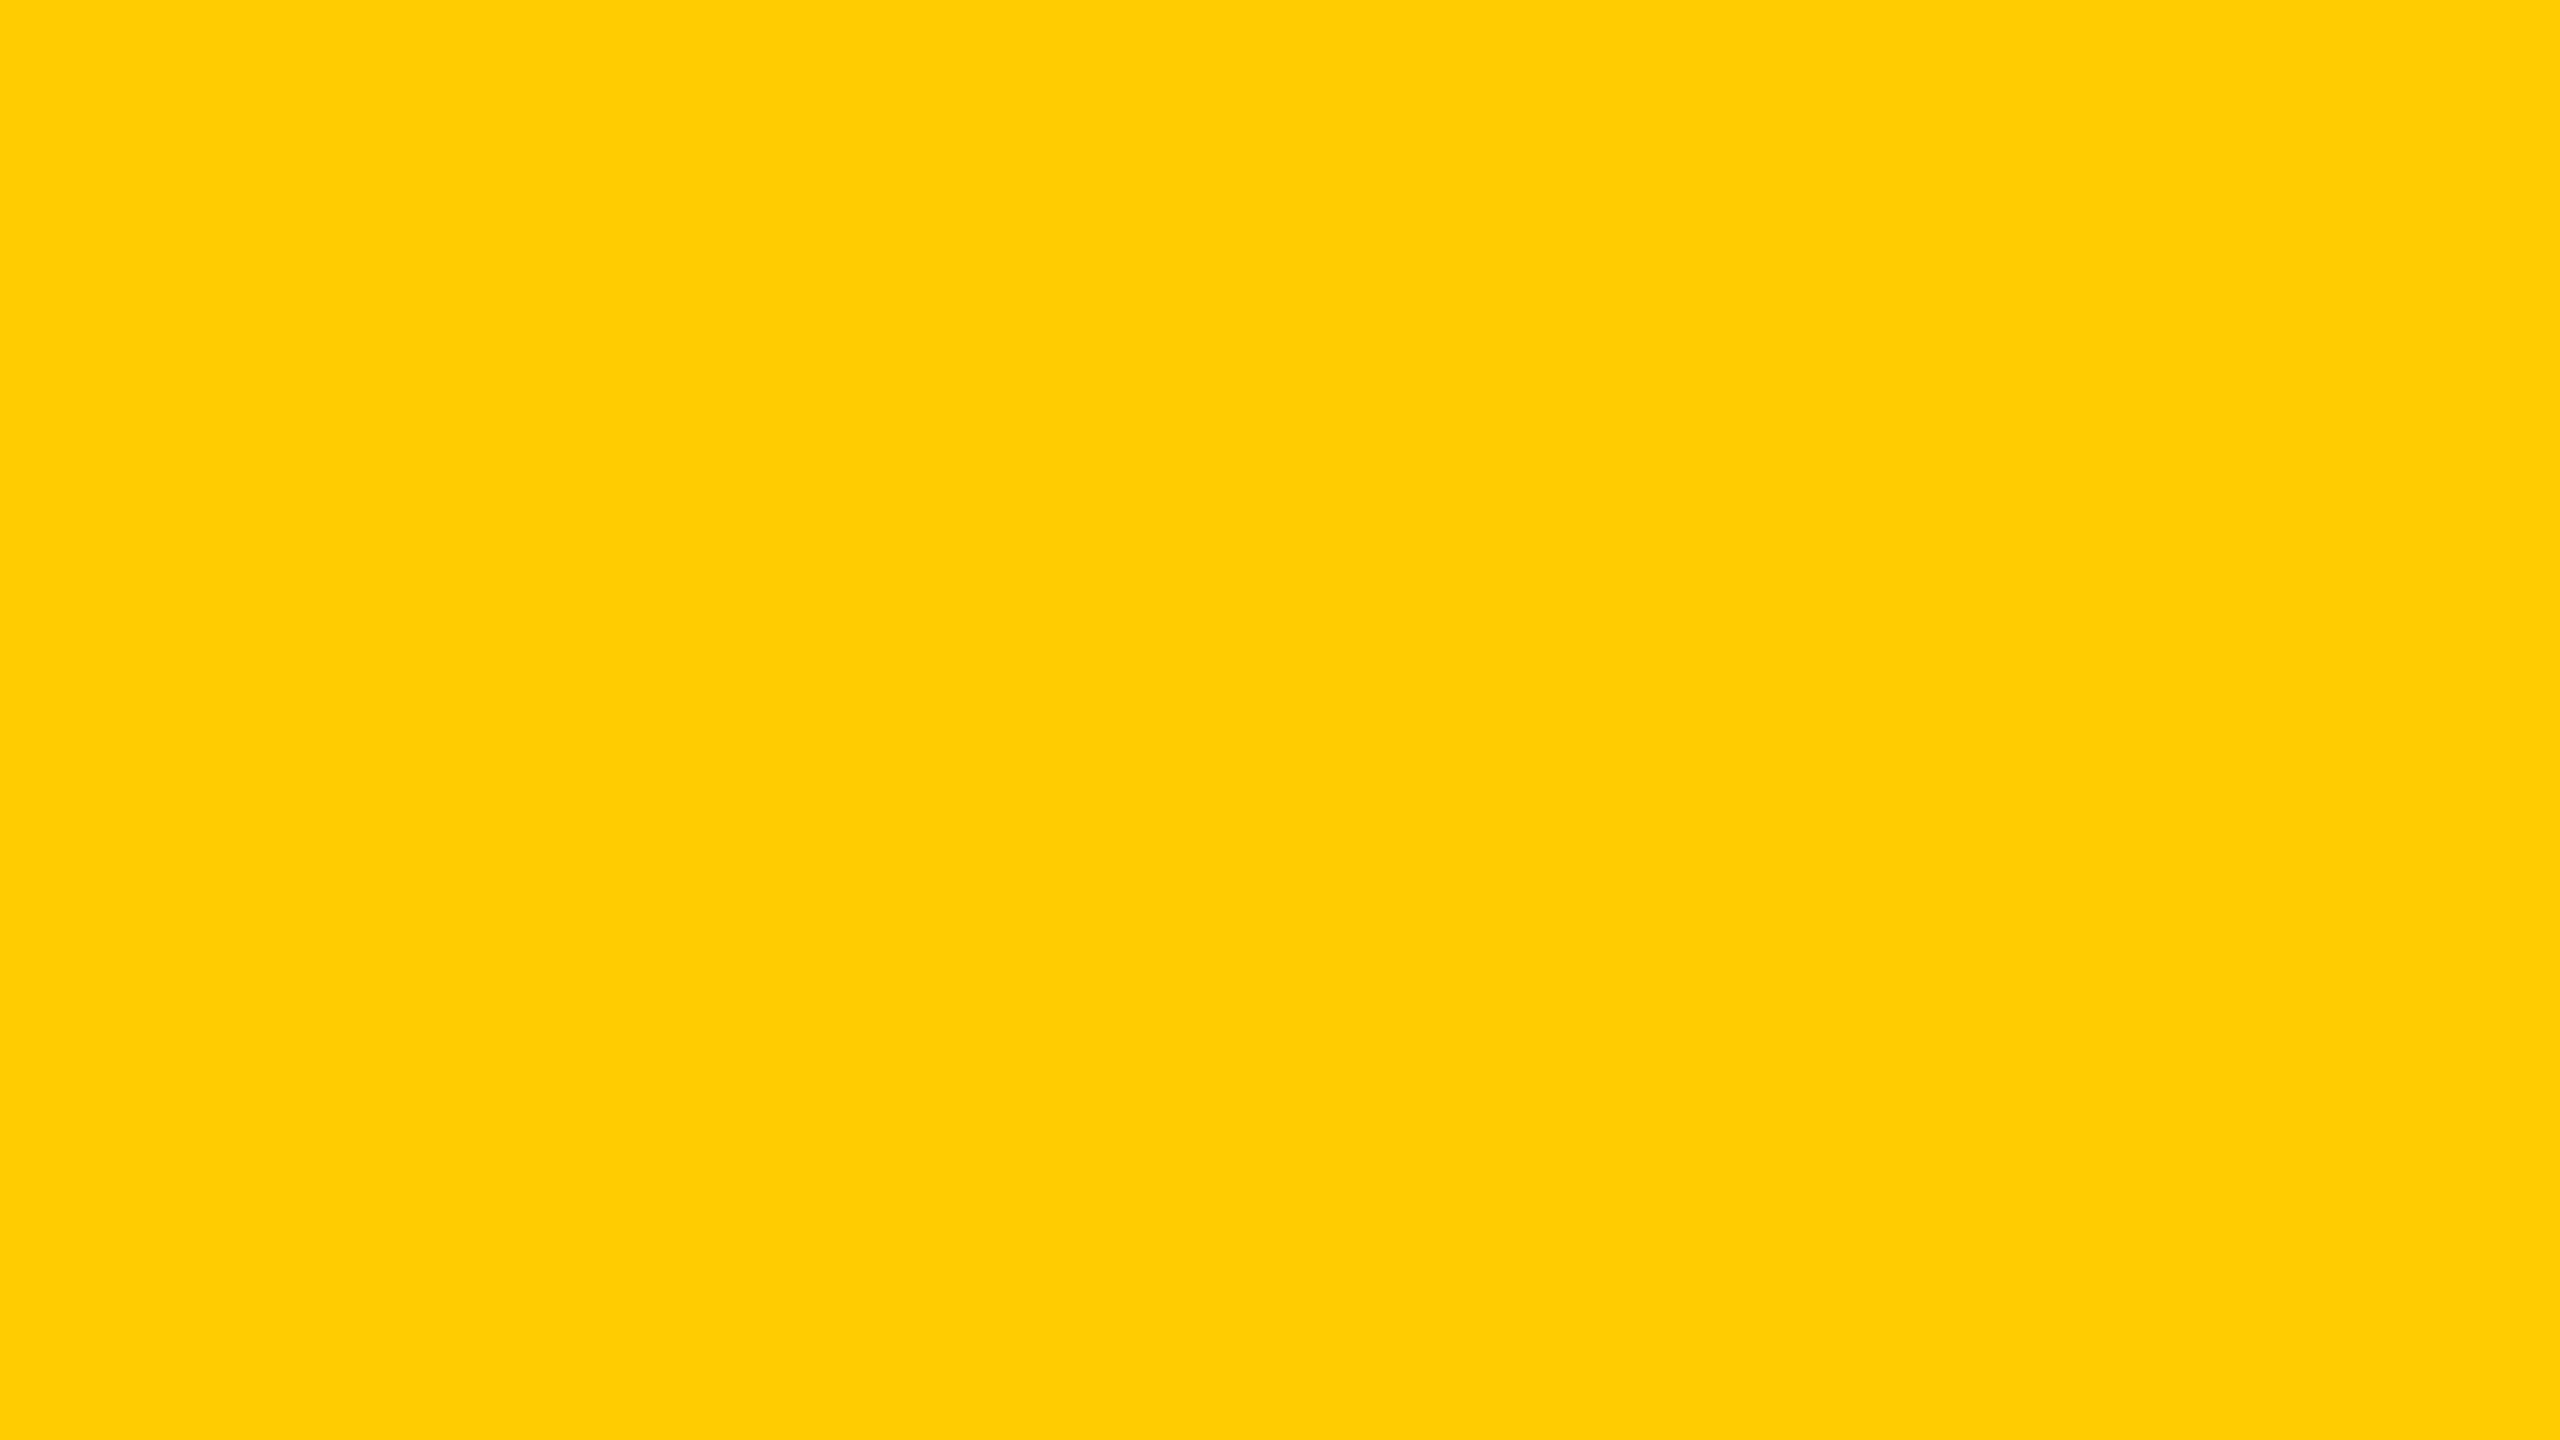 2560x1440 Tangerine Yellow Solid Color Background